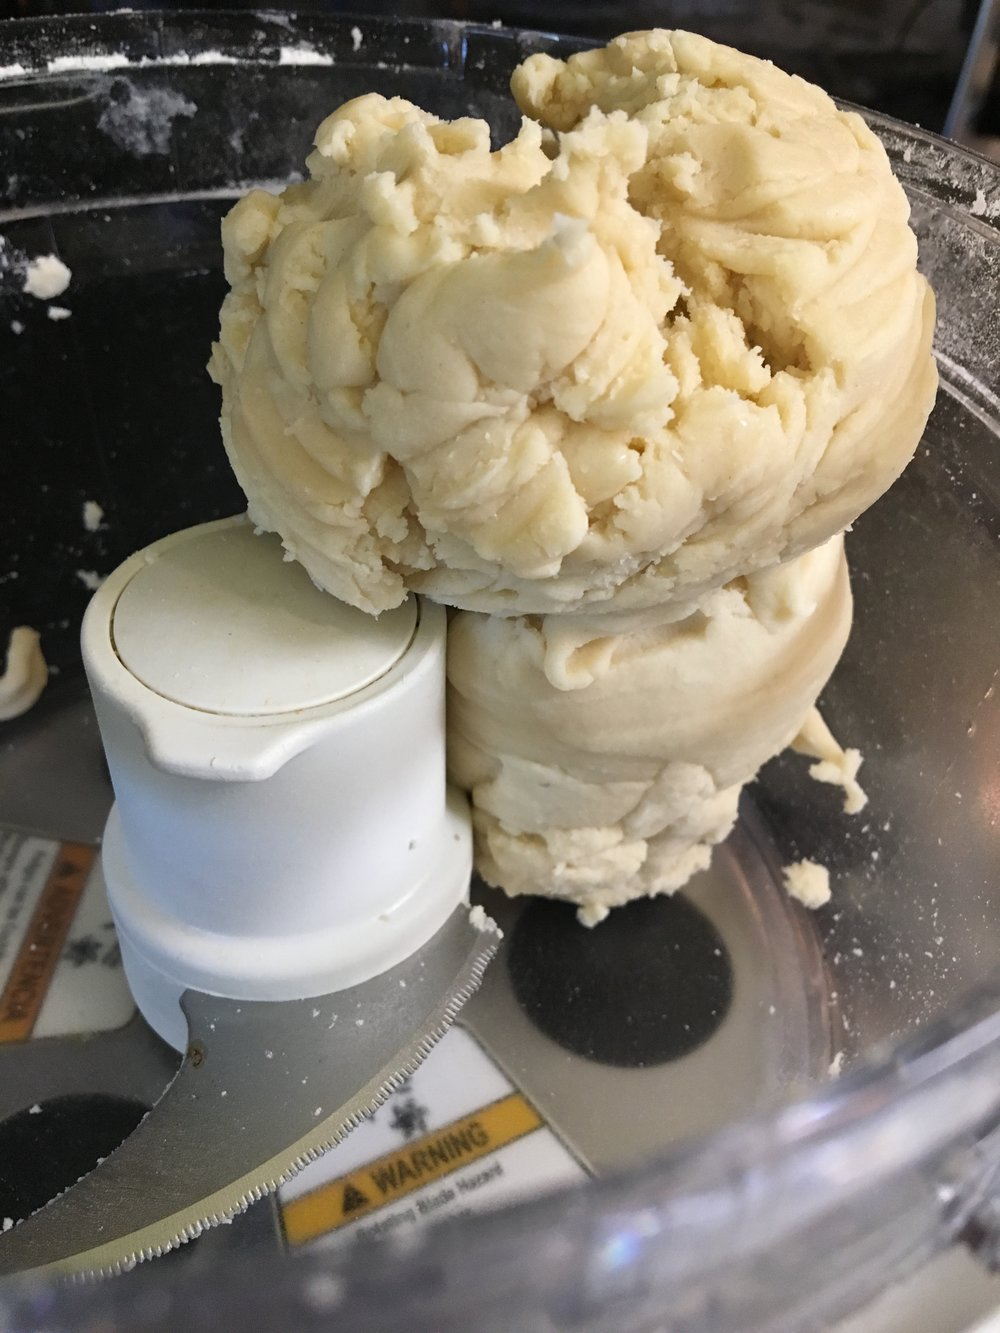 After the ice water is added and with the processor running, let the dough form into a ball on its own.